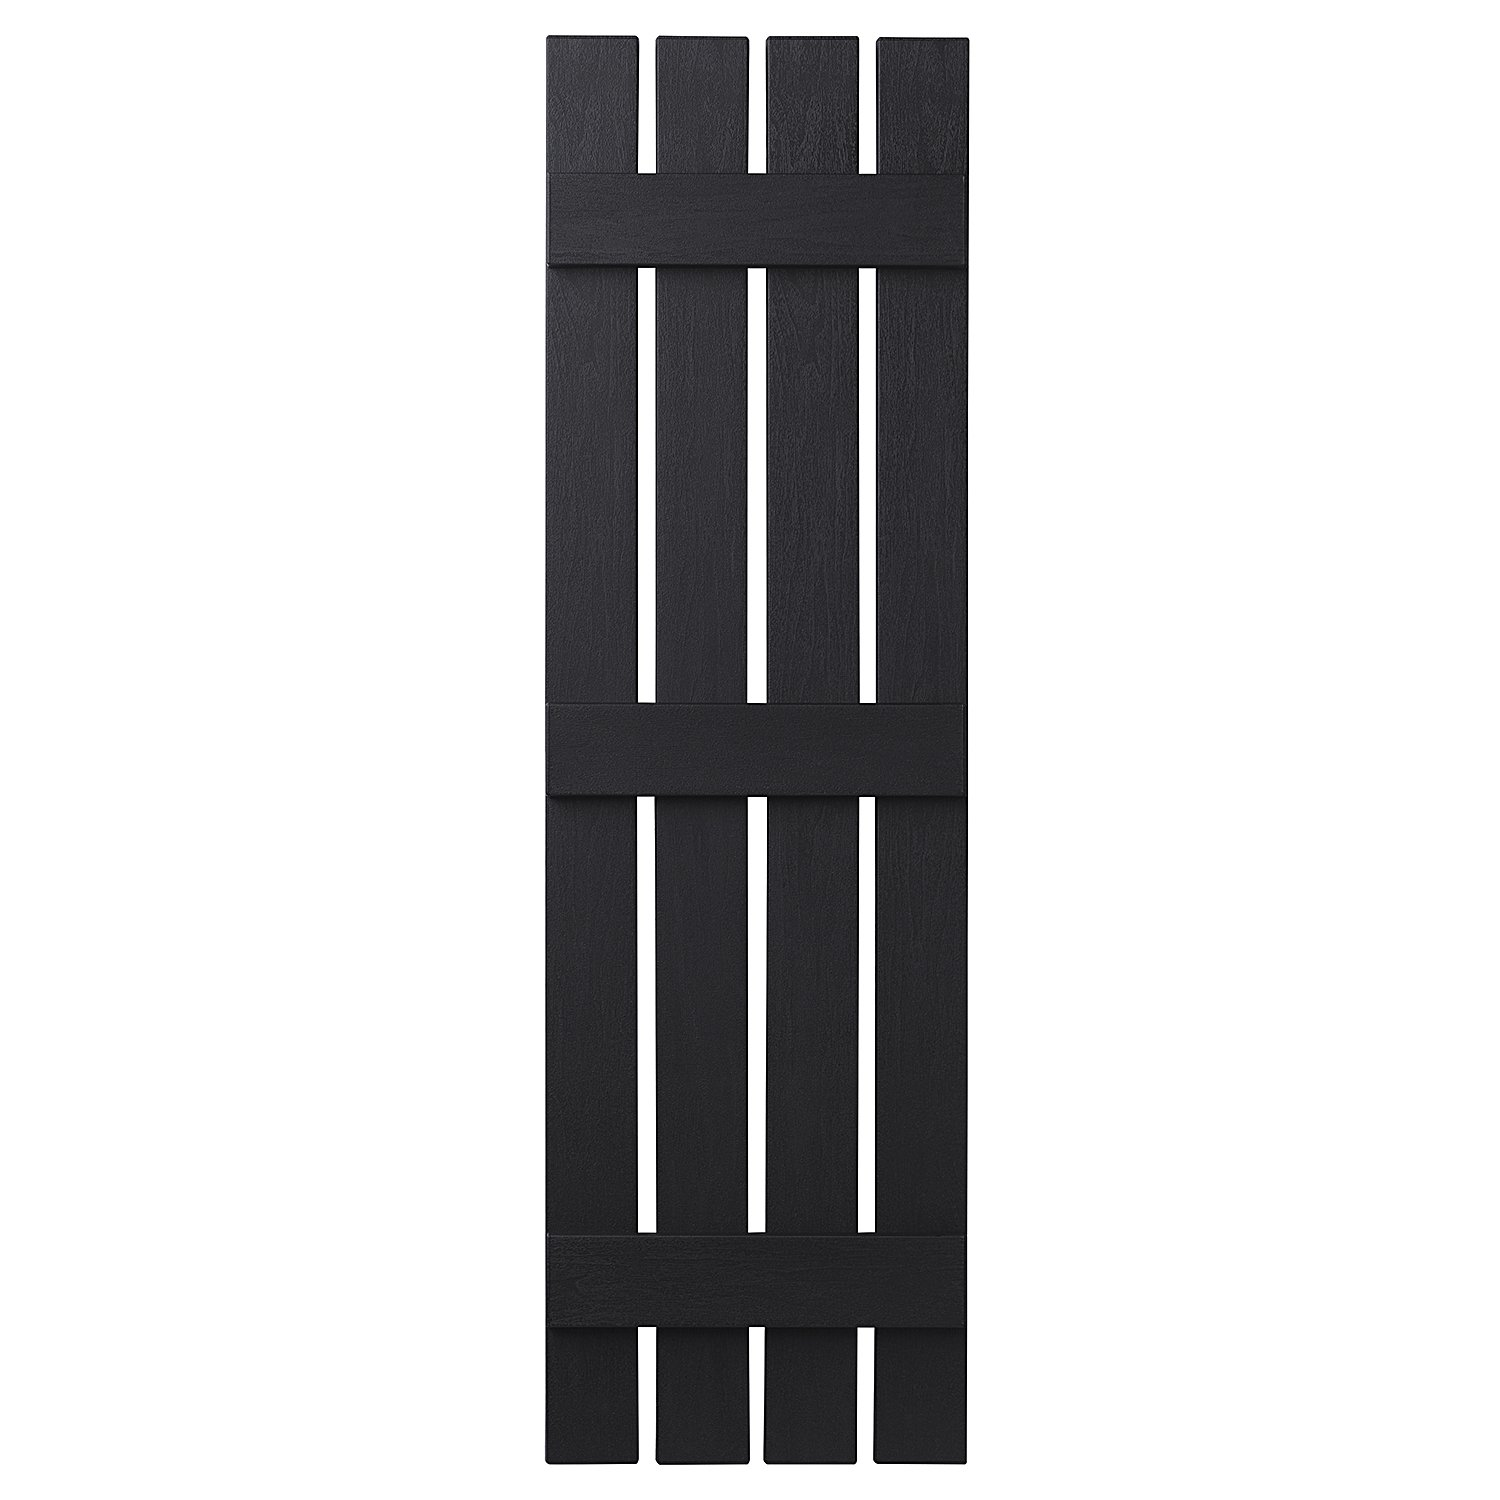 PlyGem Shutters and Accents VIN401659 33 4 Open Board and Batten Shutter, Black by PlyGem Shutters and Accents (Image #1)